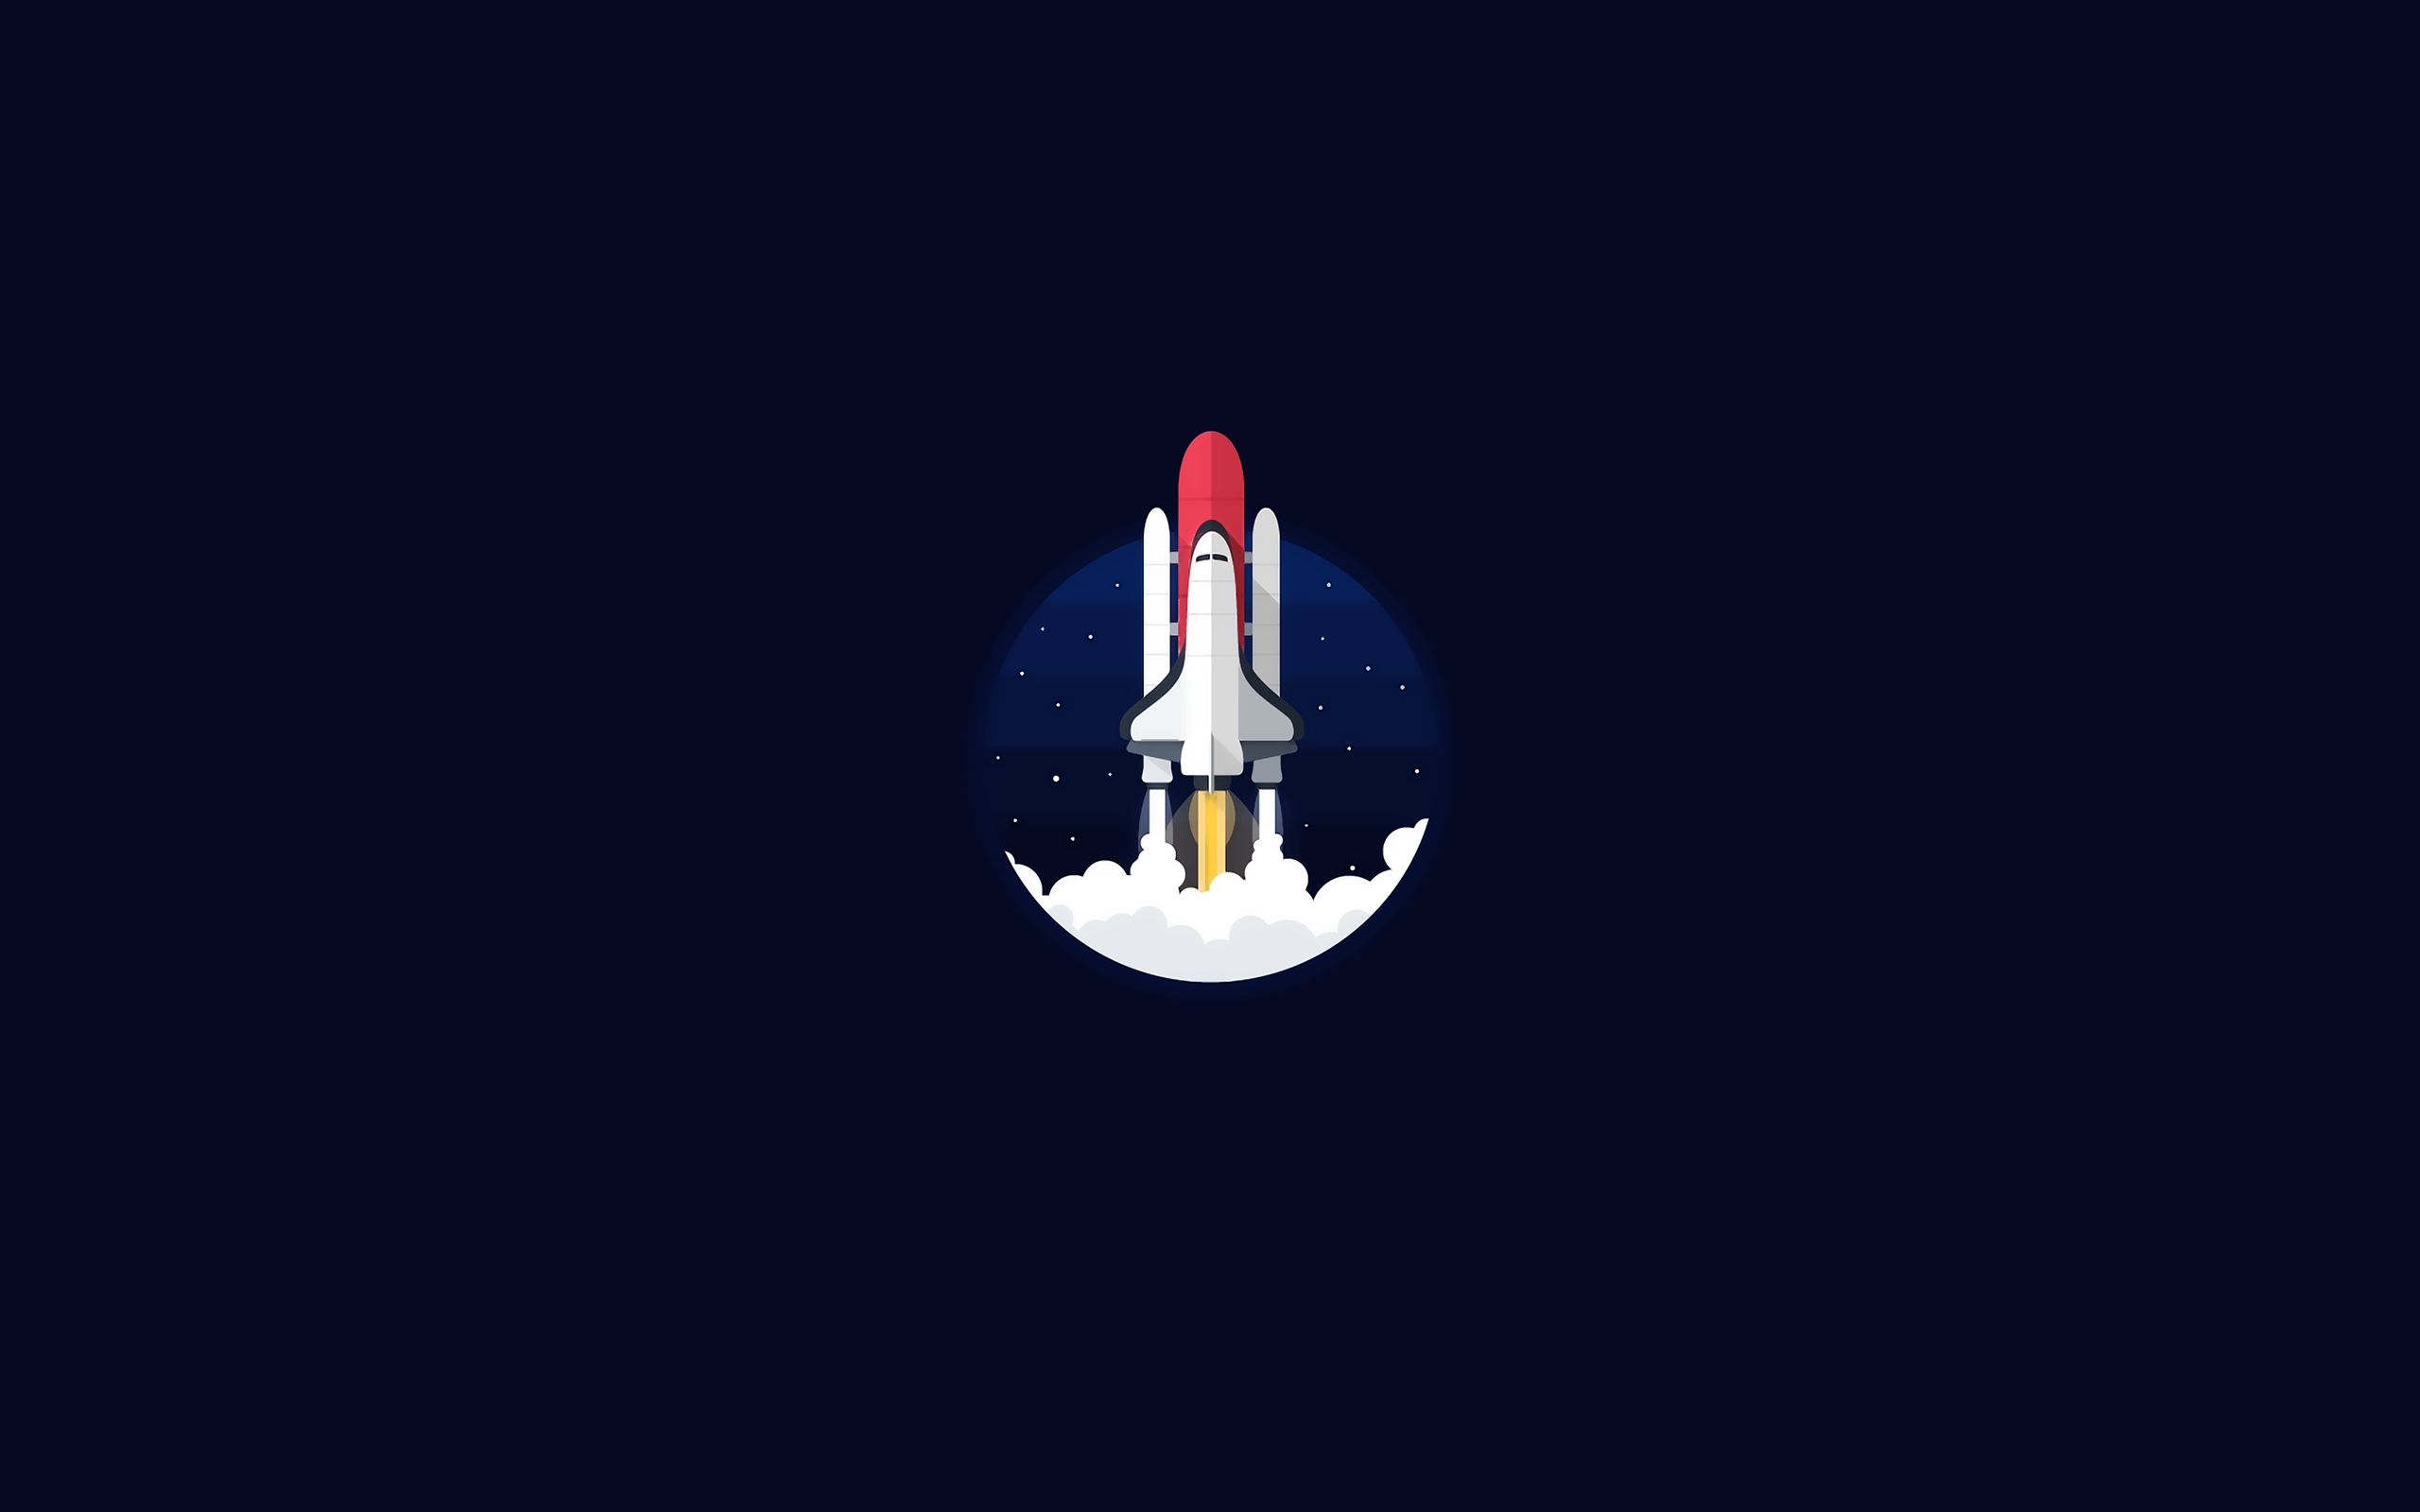 121020 Space Shuttle Dark background Minimal wallpapers and 2560x1600